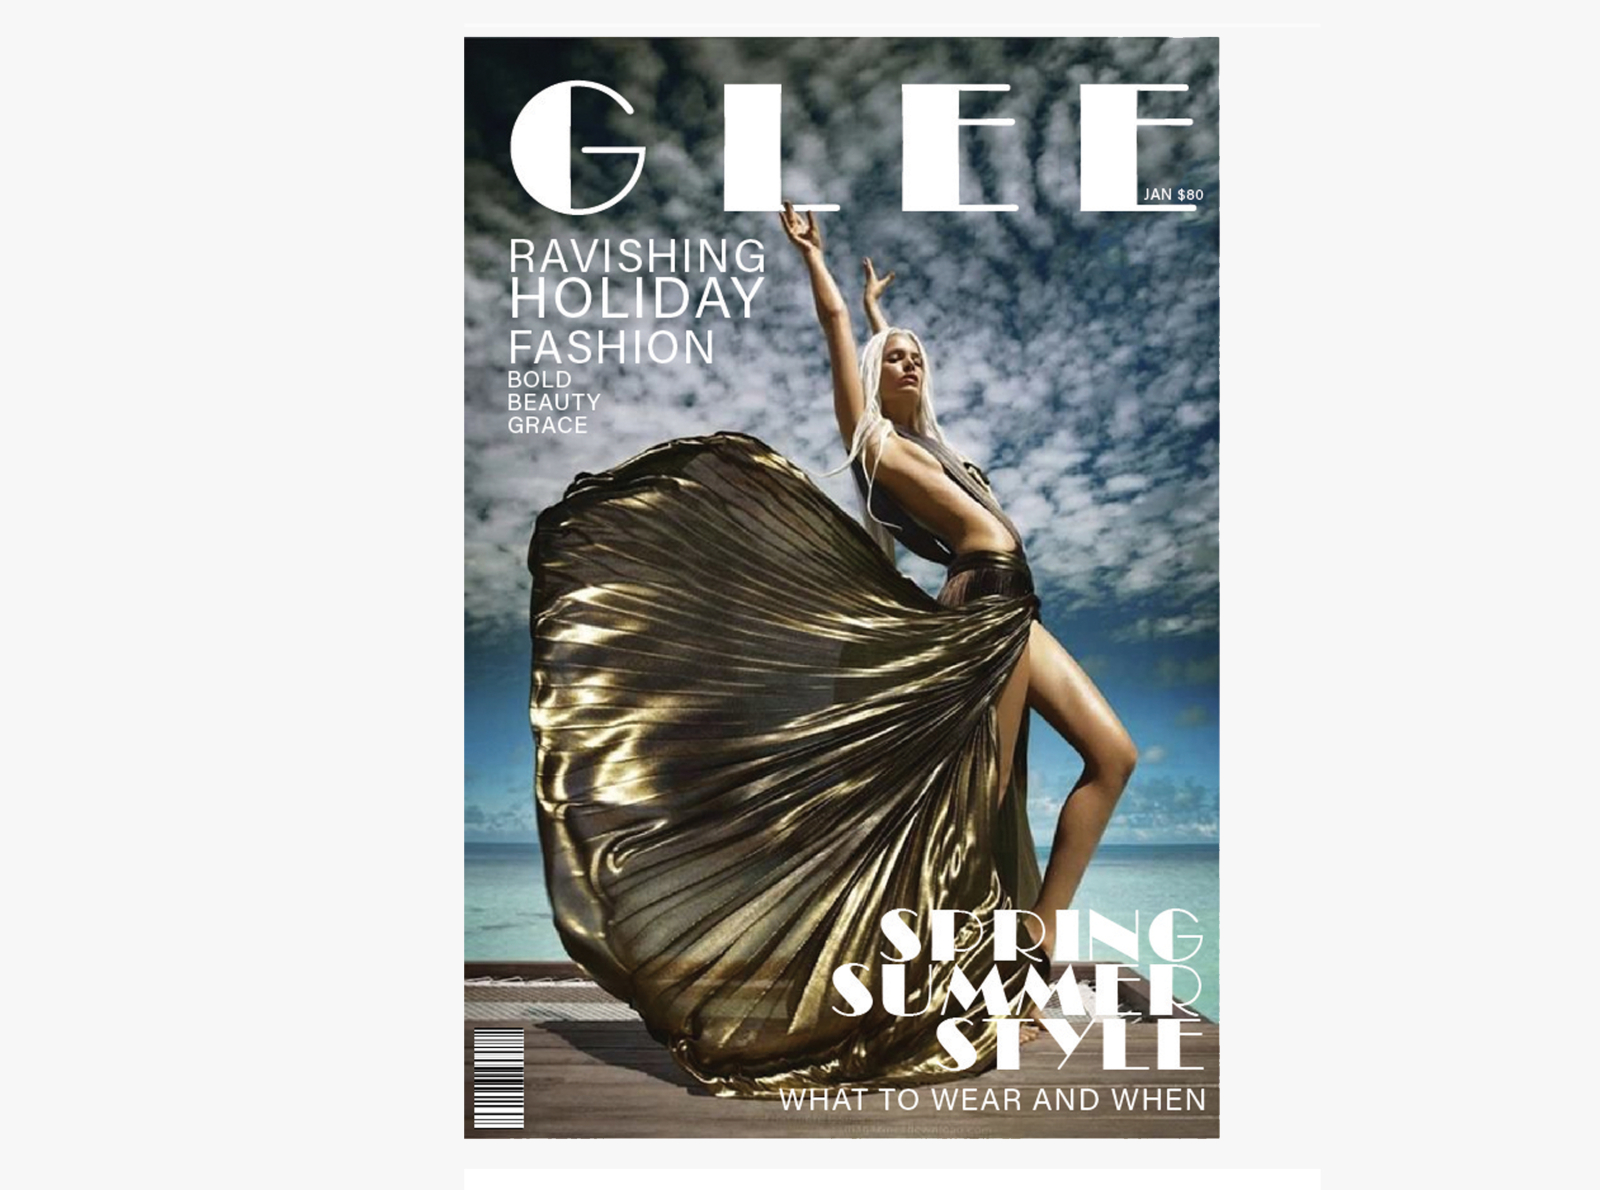 Magazine Cover By Aishwarya Hiremath On Dribbble